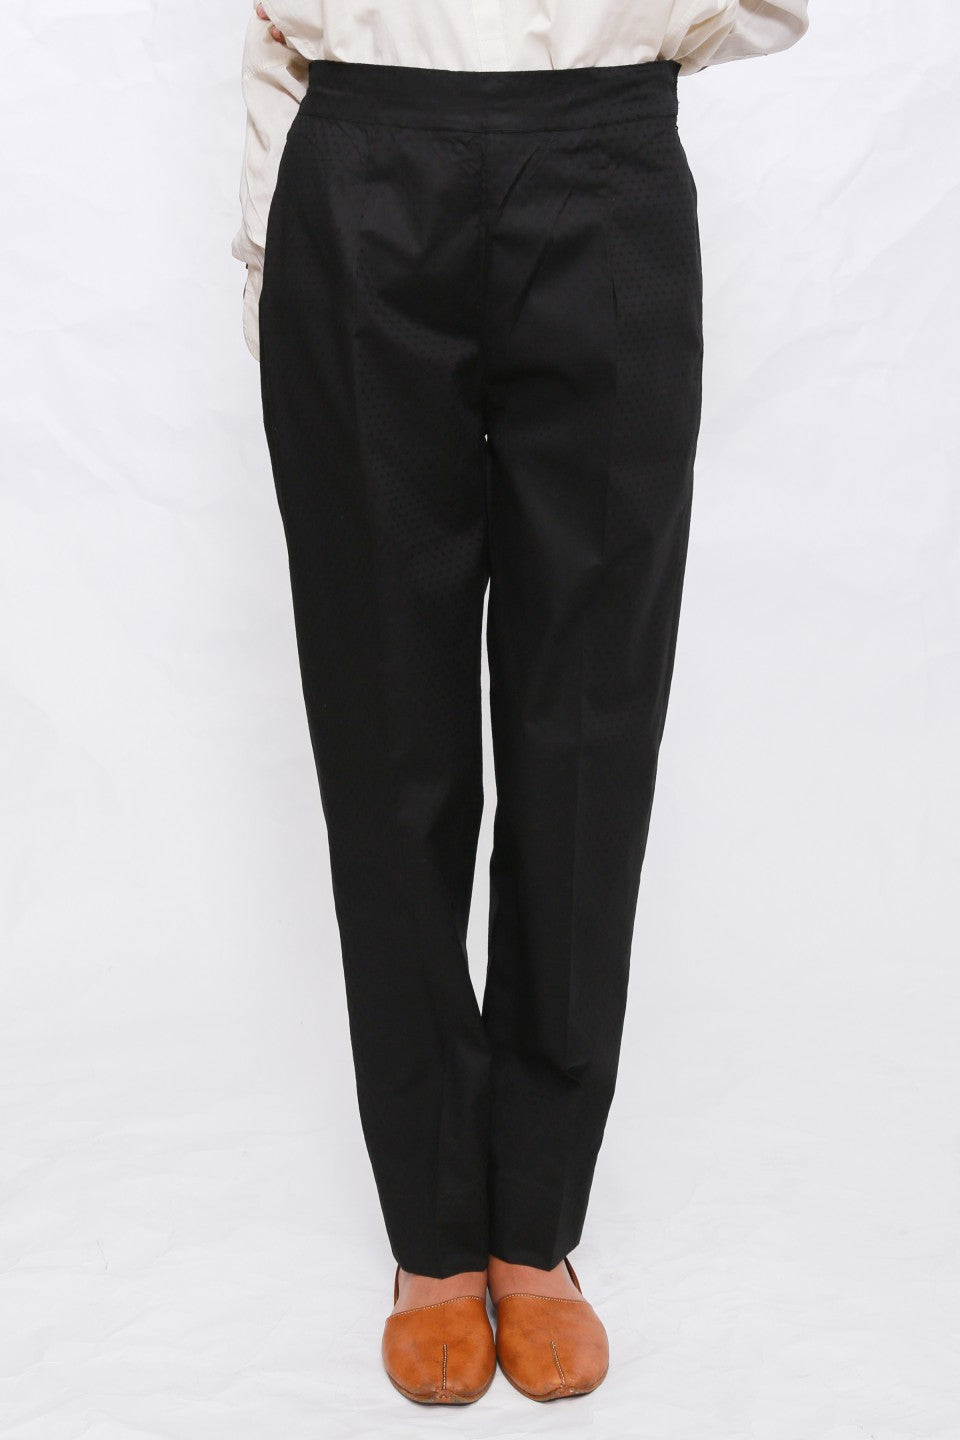 Generation - Black Textured Trouser